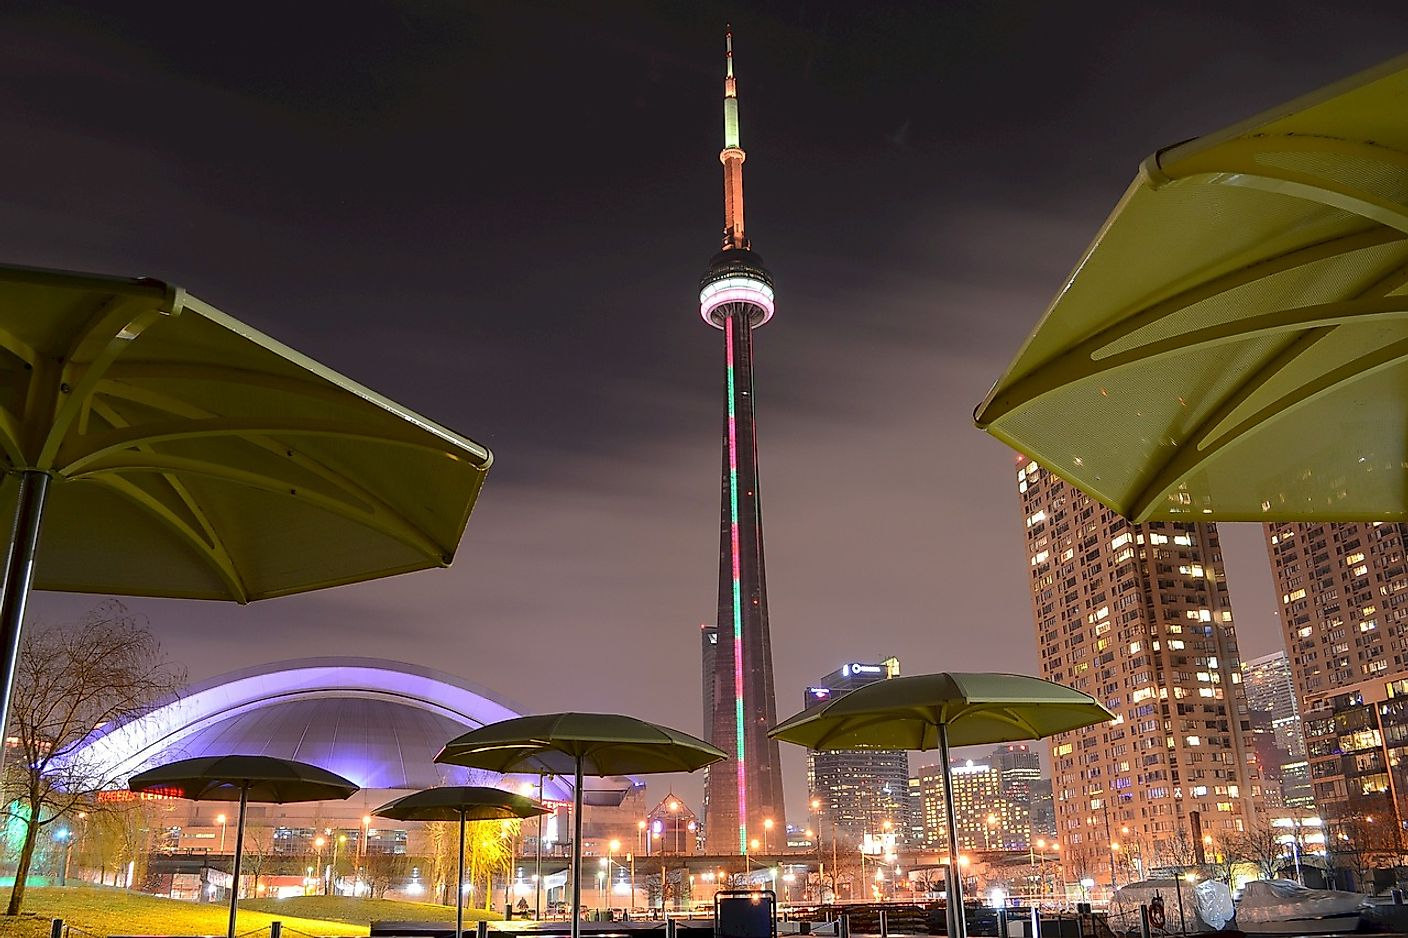 The famed CN Tower of Toronto, Ontario. Image credit: ElasticComputeFarm/Pixabay